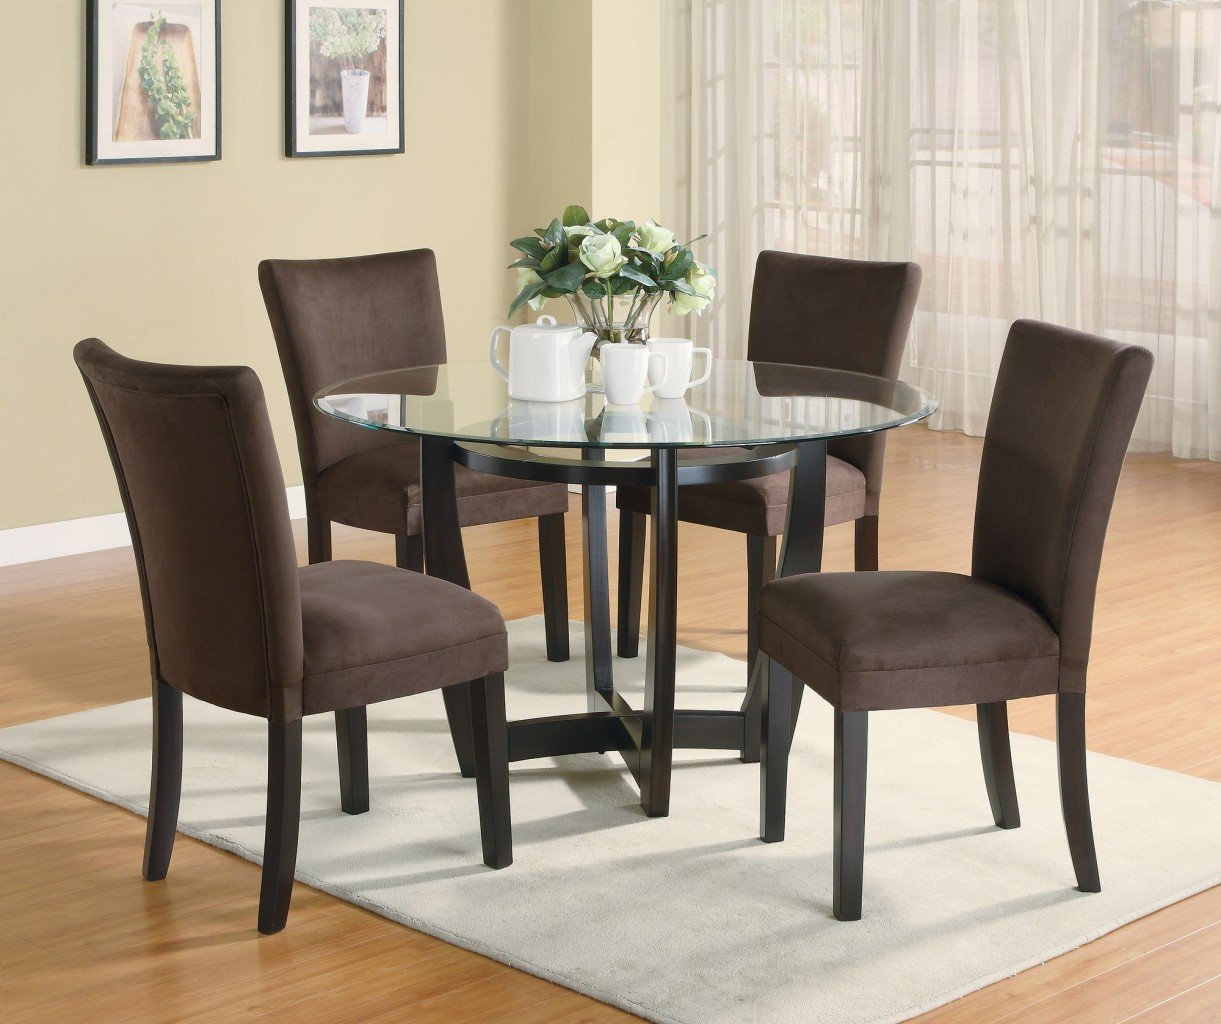 Cheap dining room table sets home furniture design for Pictures of dining room tables